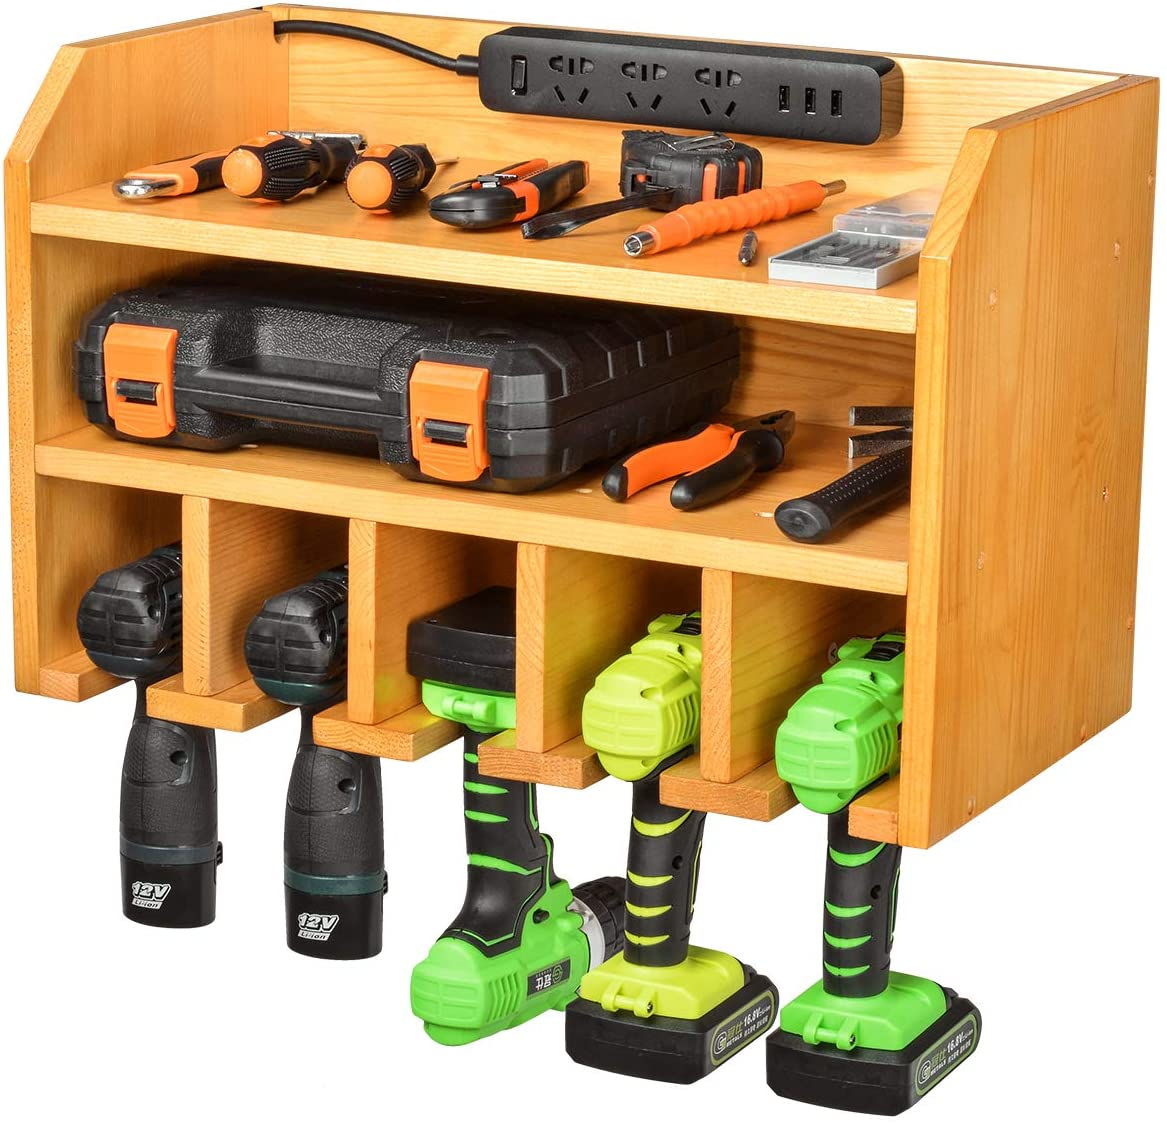 Drill Charging Station Drill Storage Wall Mounted Tool Storage Organizer Power Tool Storage - Power Drill Toolbox Screwdriver Cordless Drill Organizer - Tool, Parts Craft Organizer Wooden